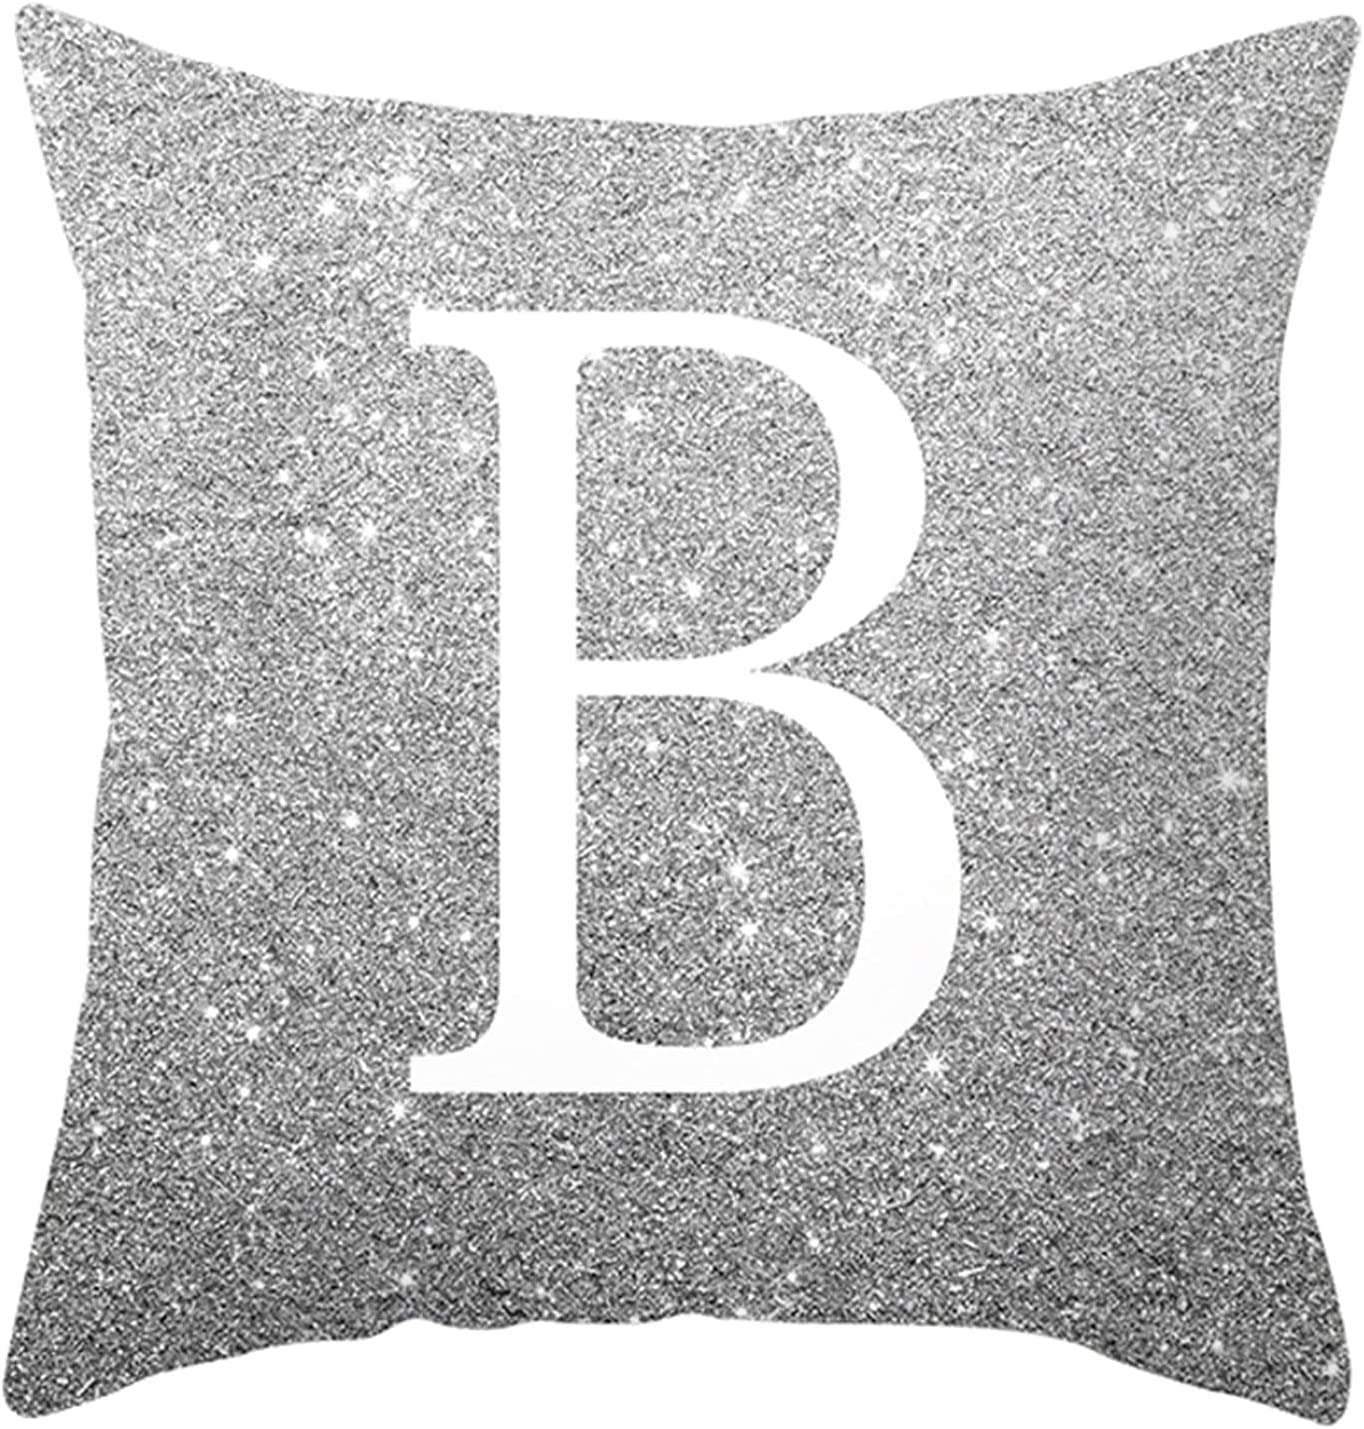 Industry No. 1 16x16 Pillow Case Outdoor Cushion security Covers Grey 40x40cm Polyester